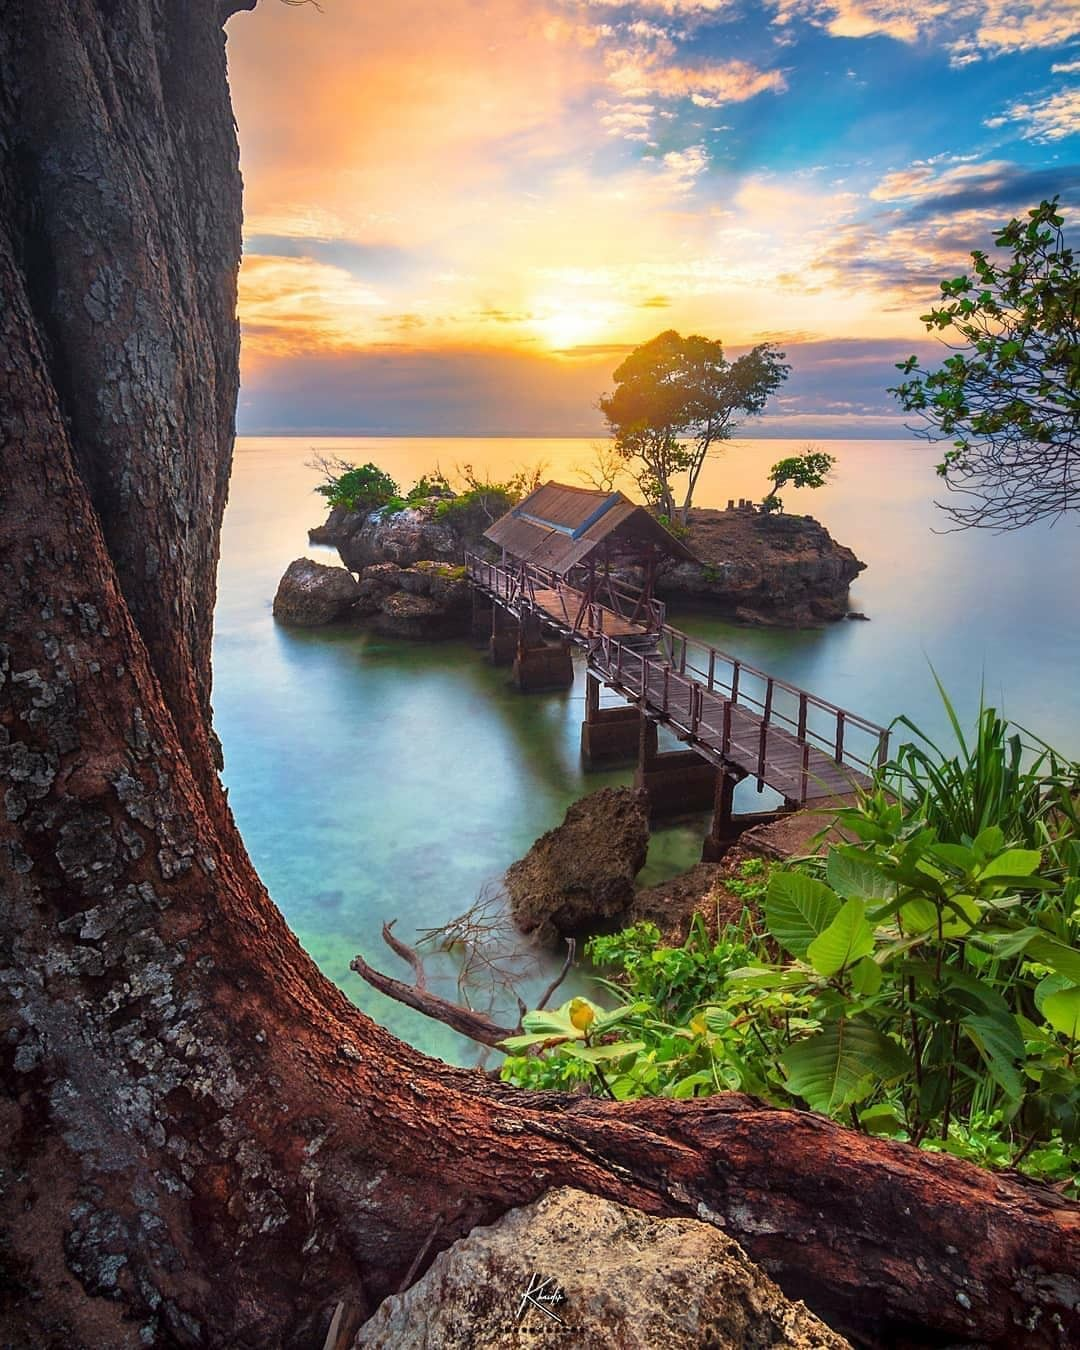 10 Best Places to Visit in Indonesia